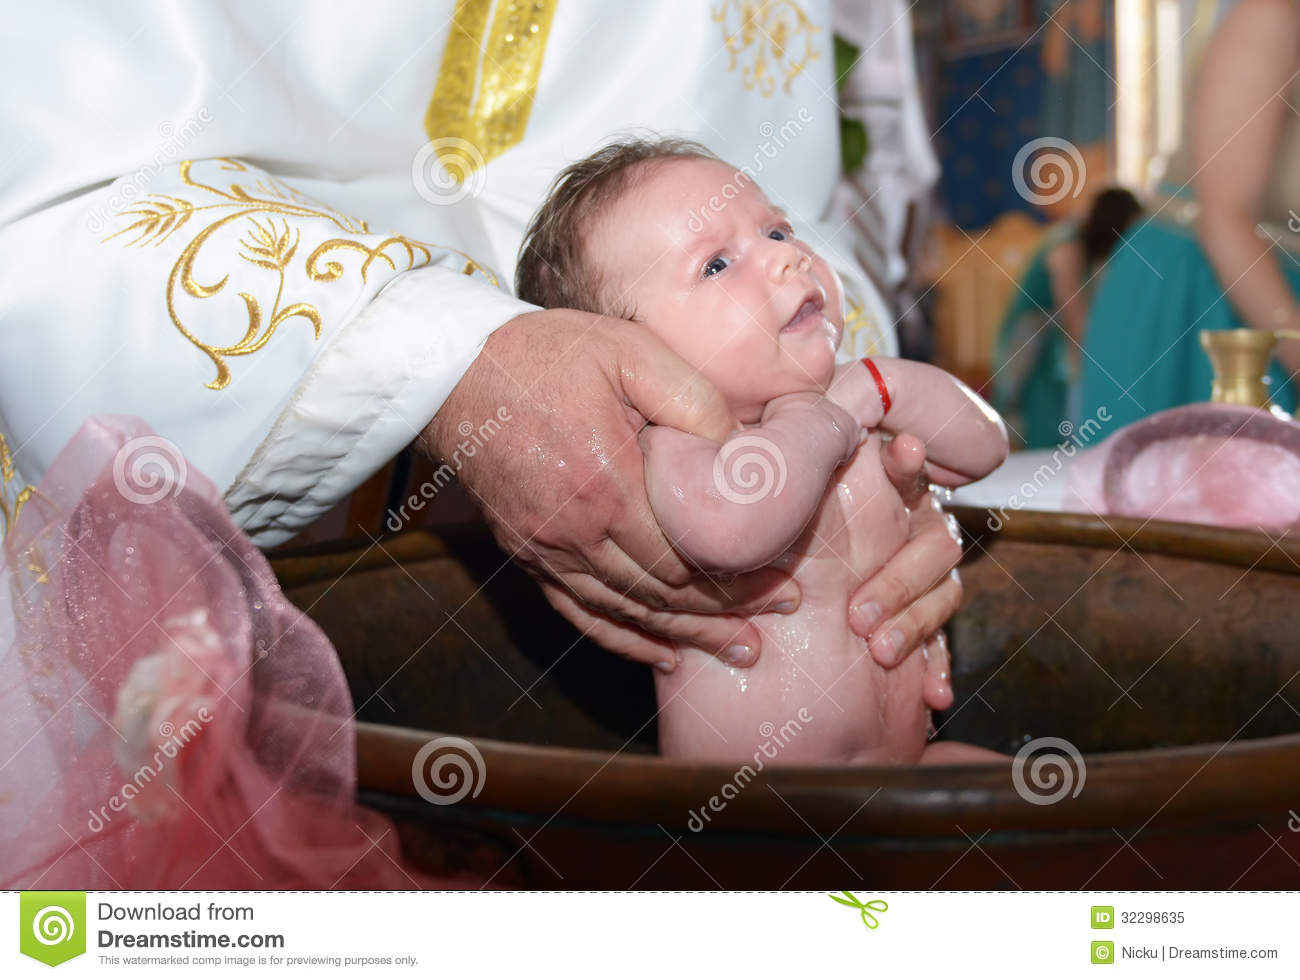 Free Vector Calendar Vecteezy Christian Baptism Royalty Free Stock Photo Image 32298635